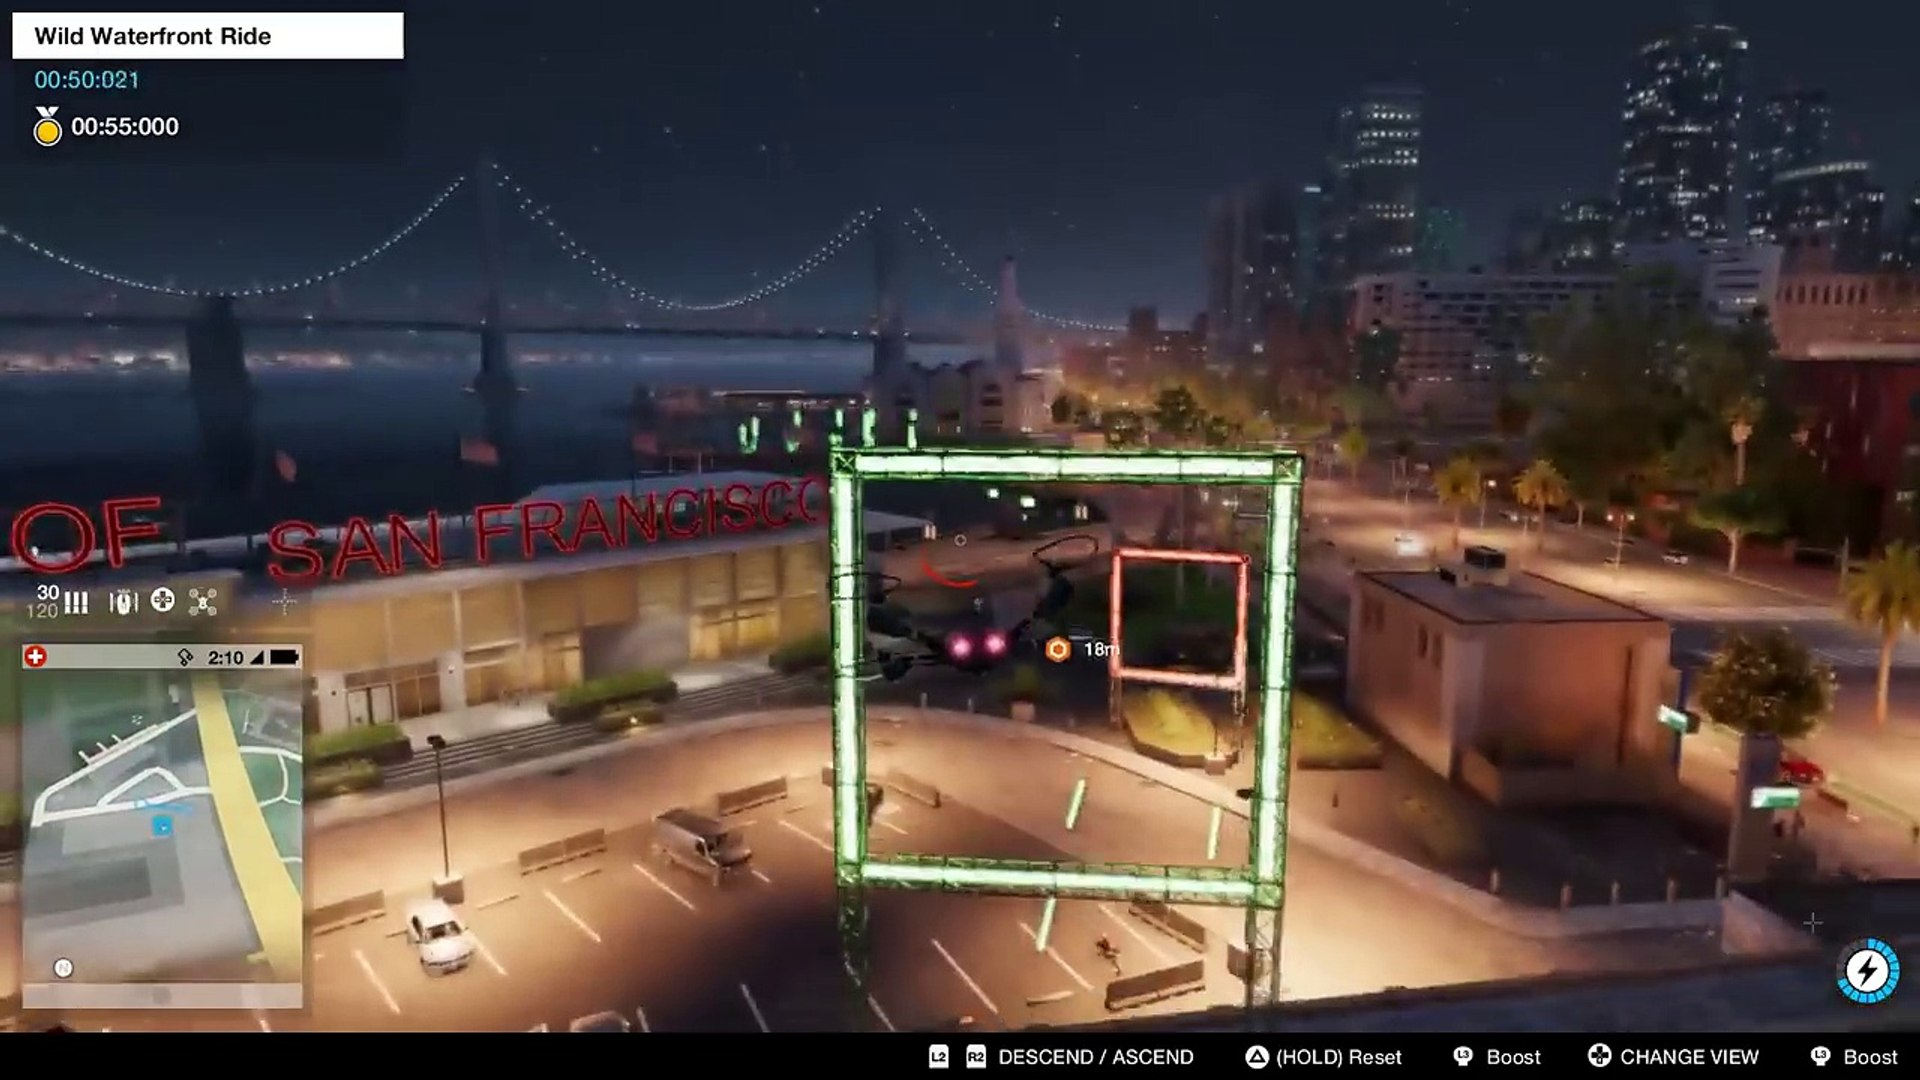 Watch Dogs 2 Gameplay : Drone Racing & Dirt Bike Trials (Watch Dogs 2 Thoughts)